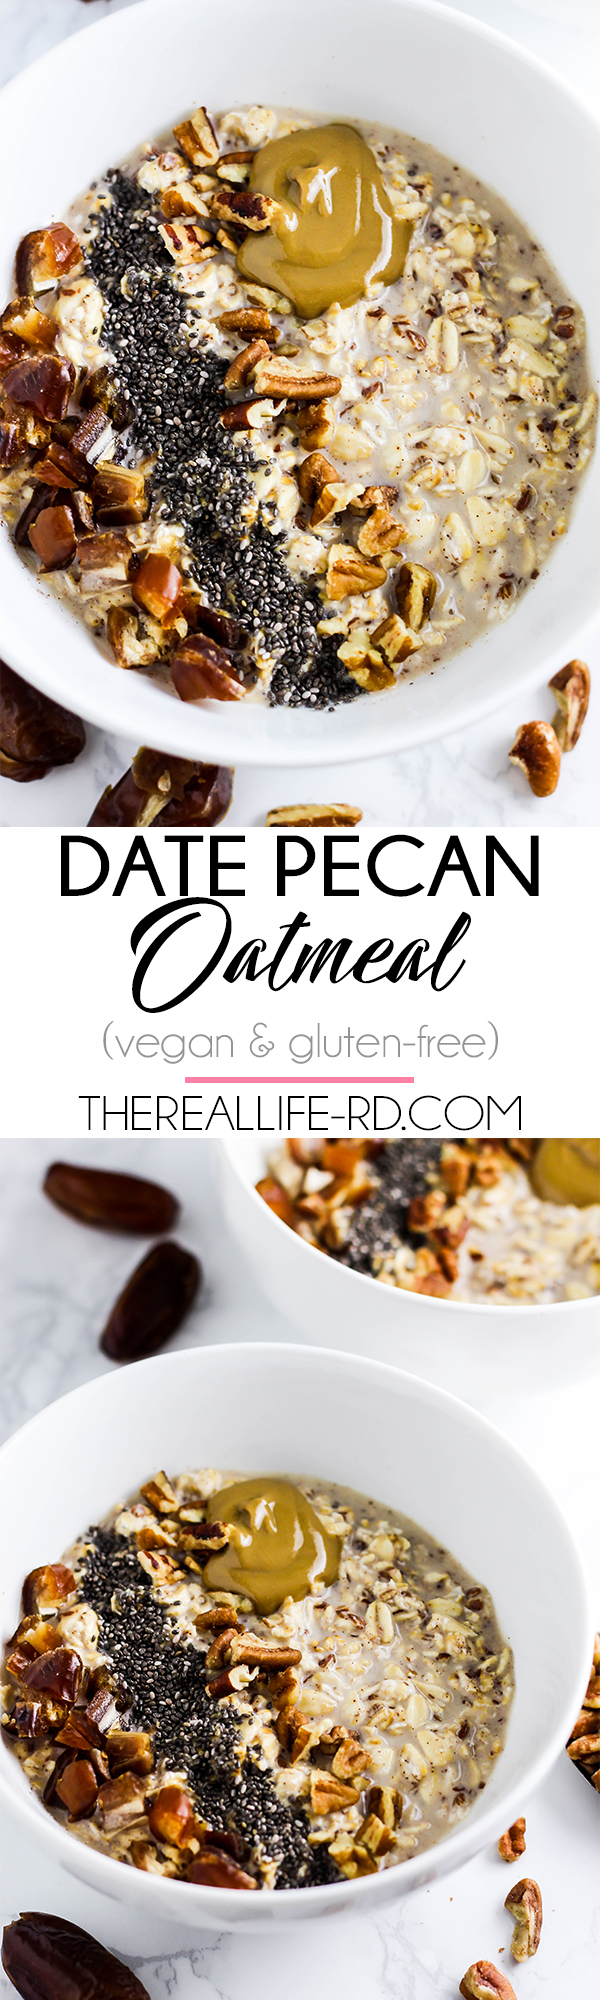 A tasty bowl of this Date Pecan Oatmeal is the perfect way to start the morning! (vegan & gluten-free)